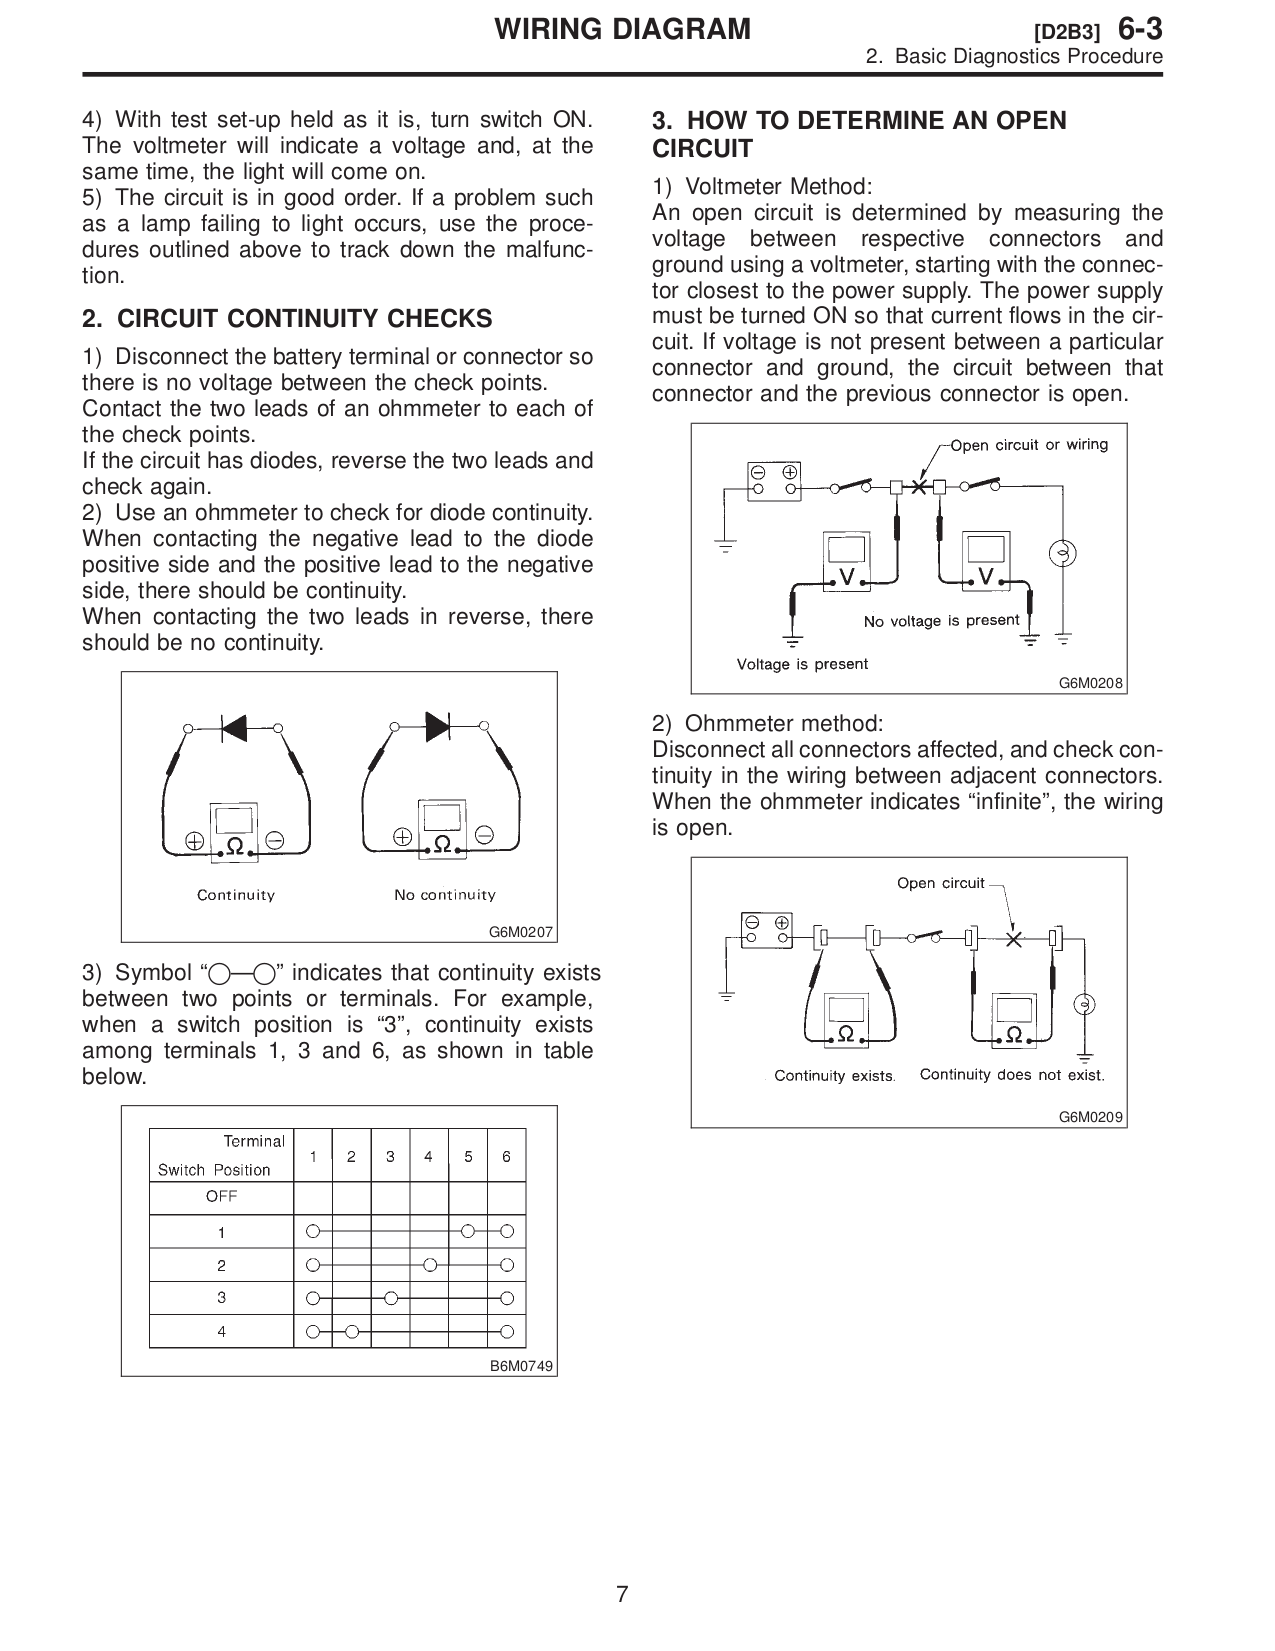 Wiring Diagram.pdf 5 srs d21 wiring diagram gandul 45 77 79 119 Basic Electrical Wiring Diagrams at gsmportal.co